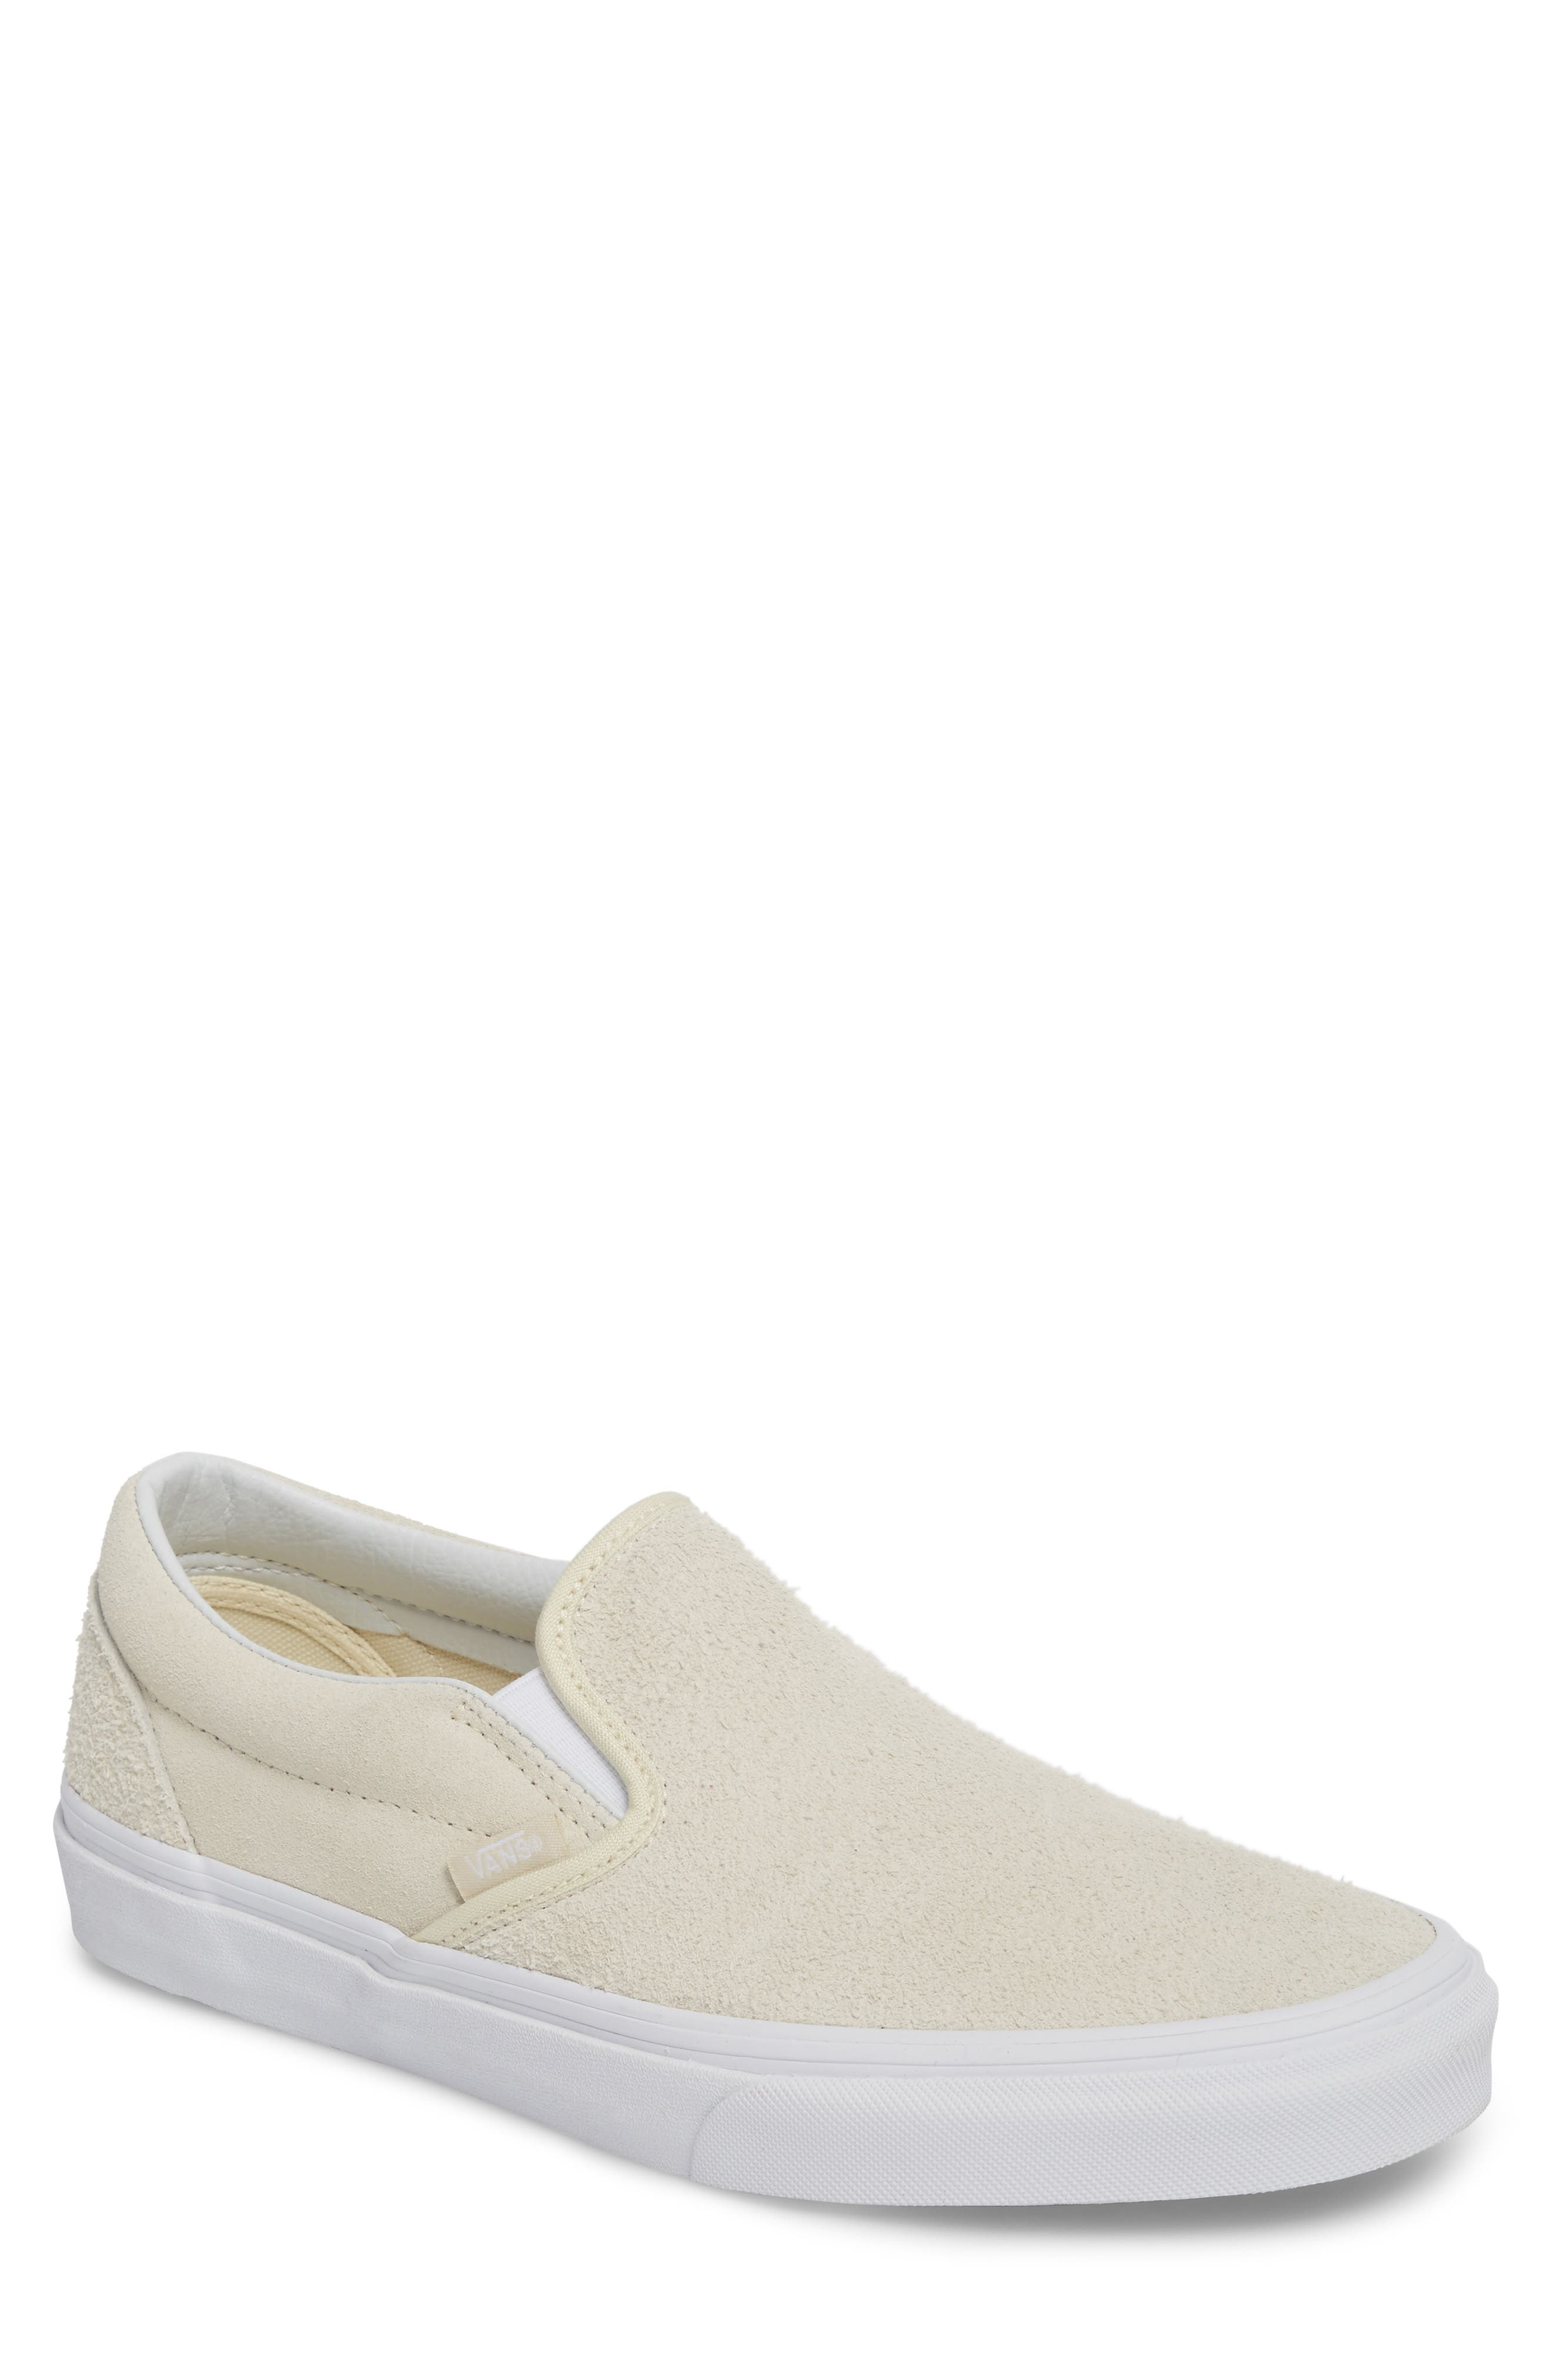 Classic Hairy Suede Slip-On Sneaker,                         Main,                         color, Turtledove Leather